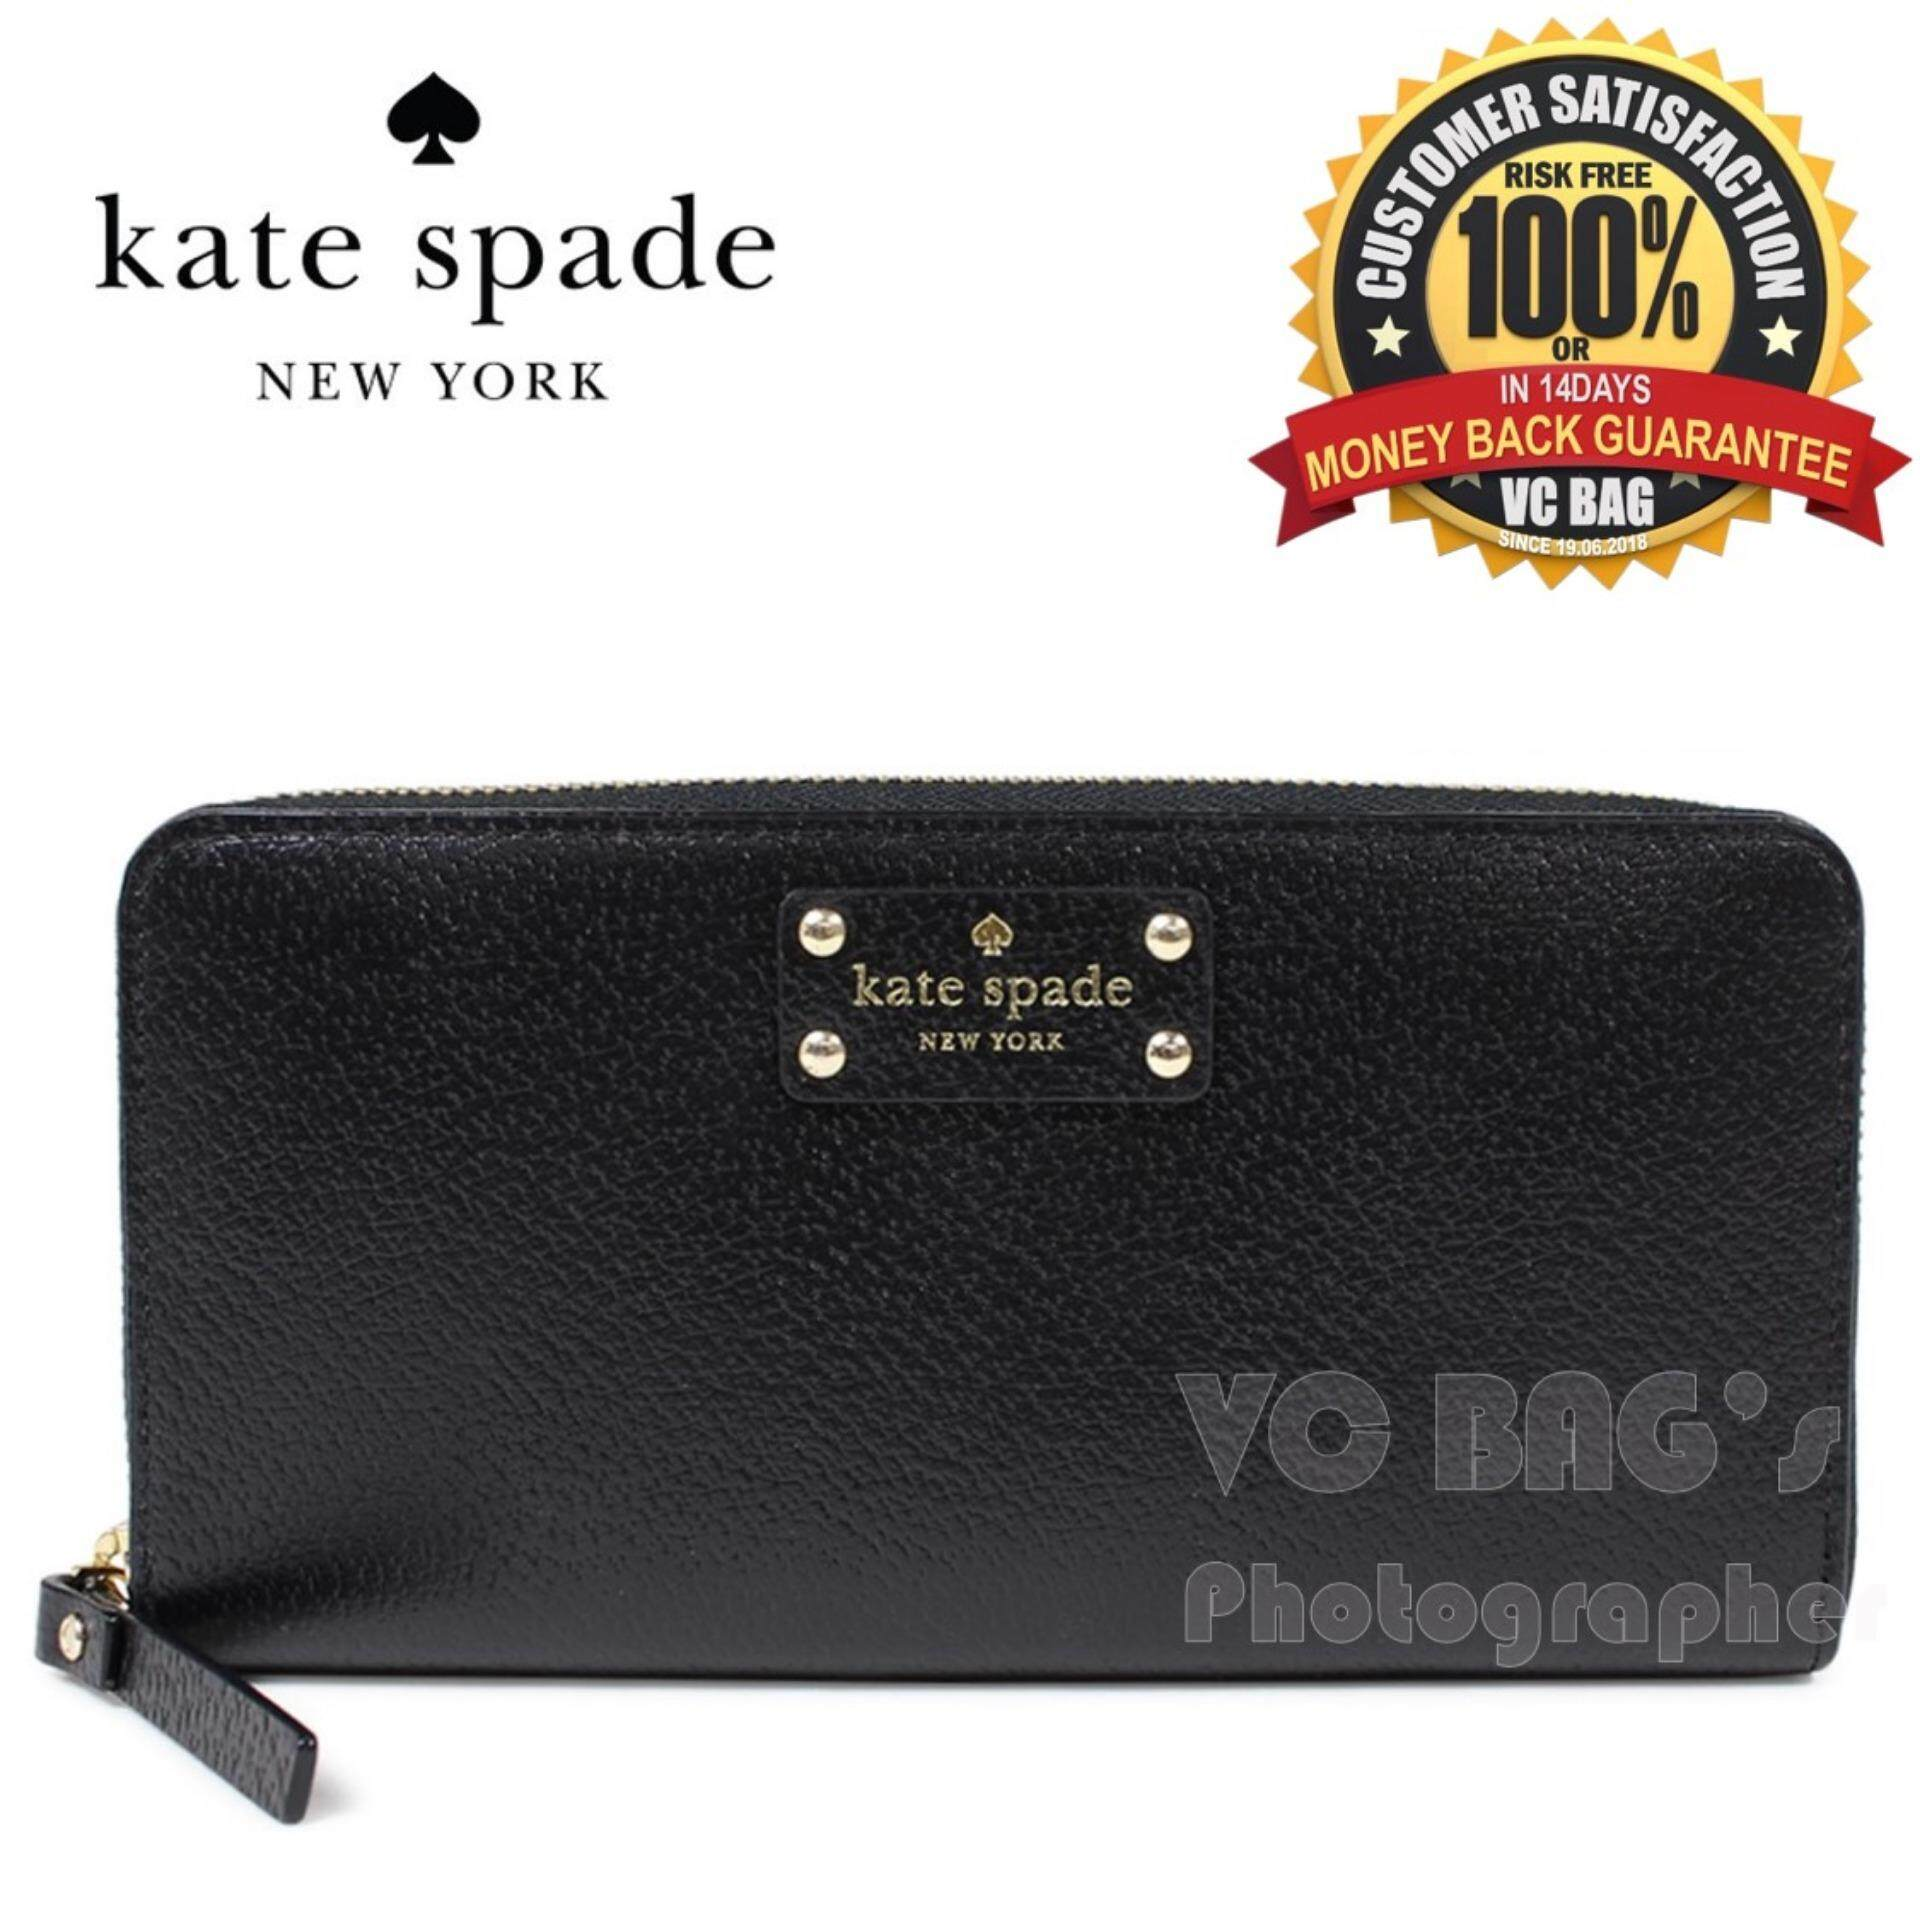 ccab43f2bf Kate Spade Women Bags price in Malaysia - Best Kate Spade Women Bags ...